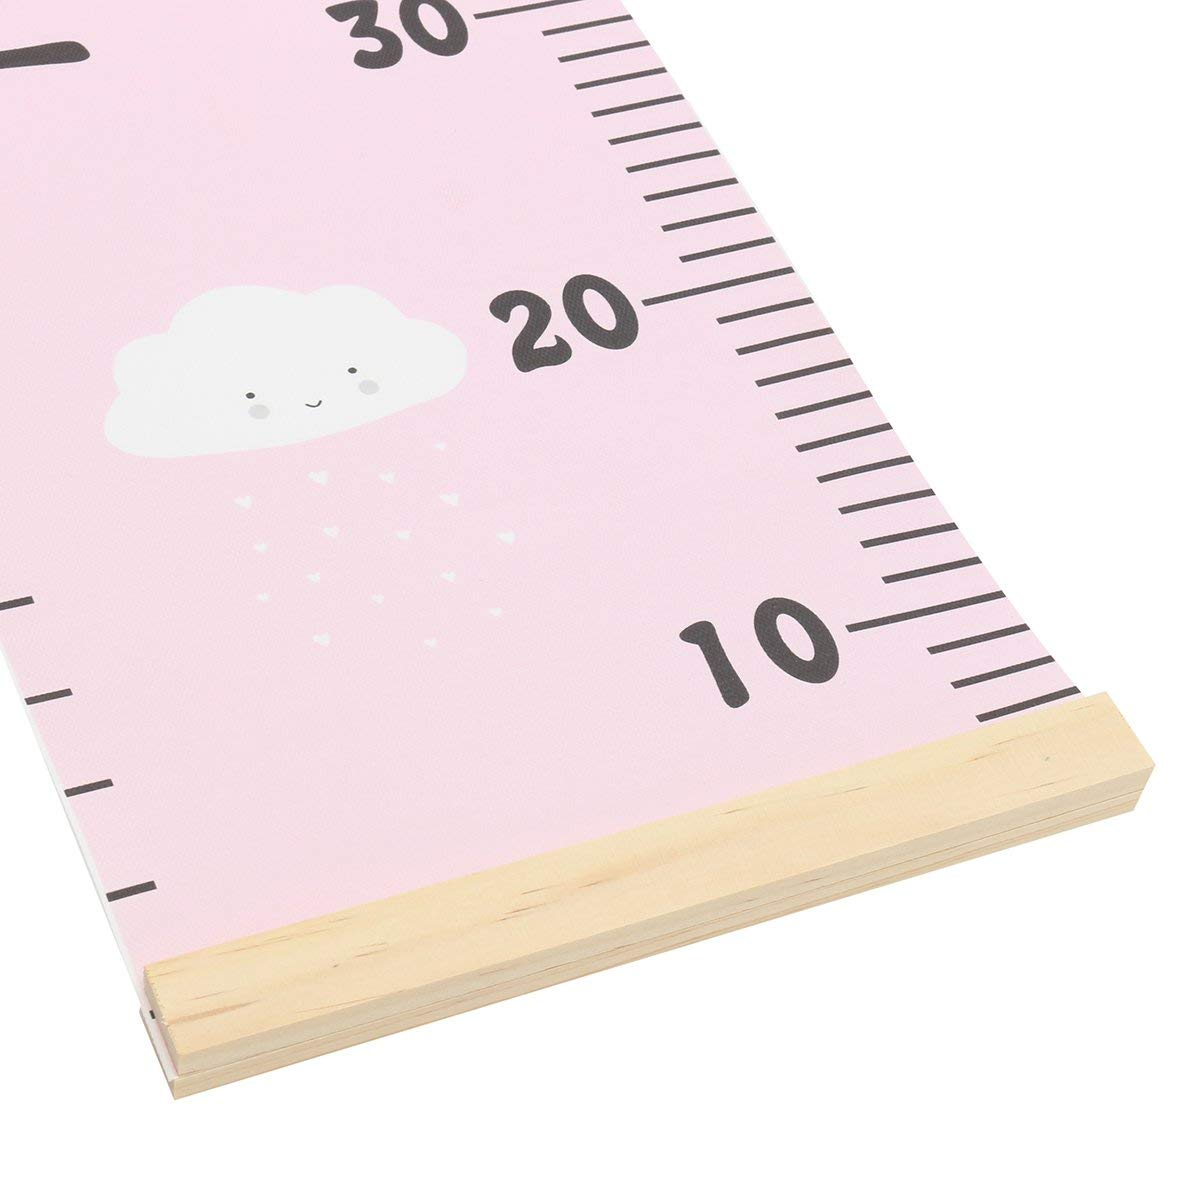 Charming Height Growth Chart Ideal Gift for Any Boy and Girl Pink Cloud